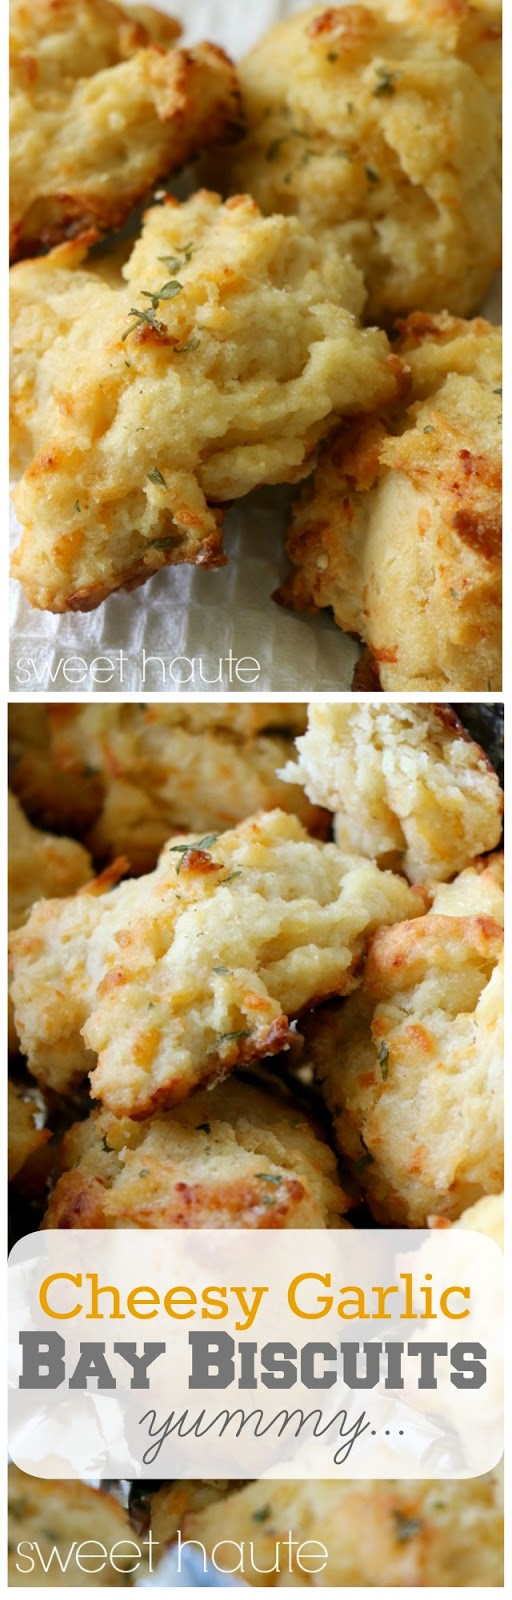 http://sweethaute.blogspot.com/2015/04/cheesy-garlic-bay-biscuits.html